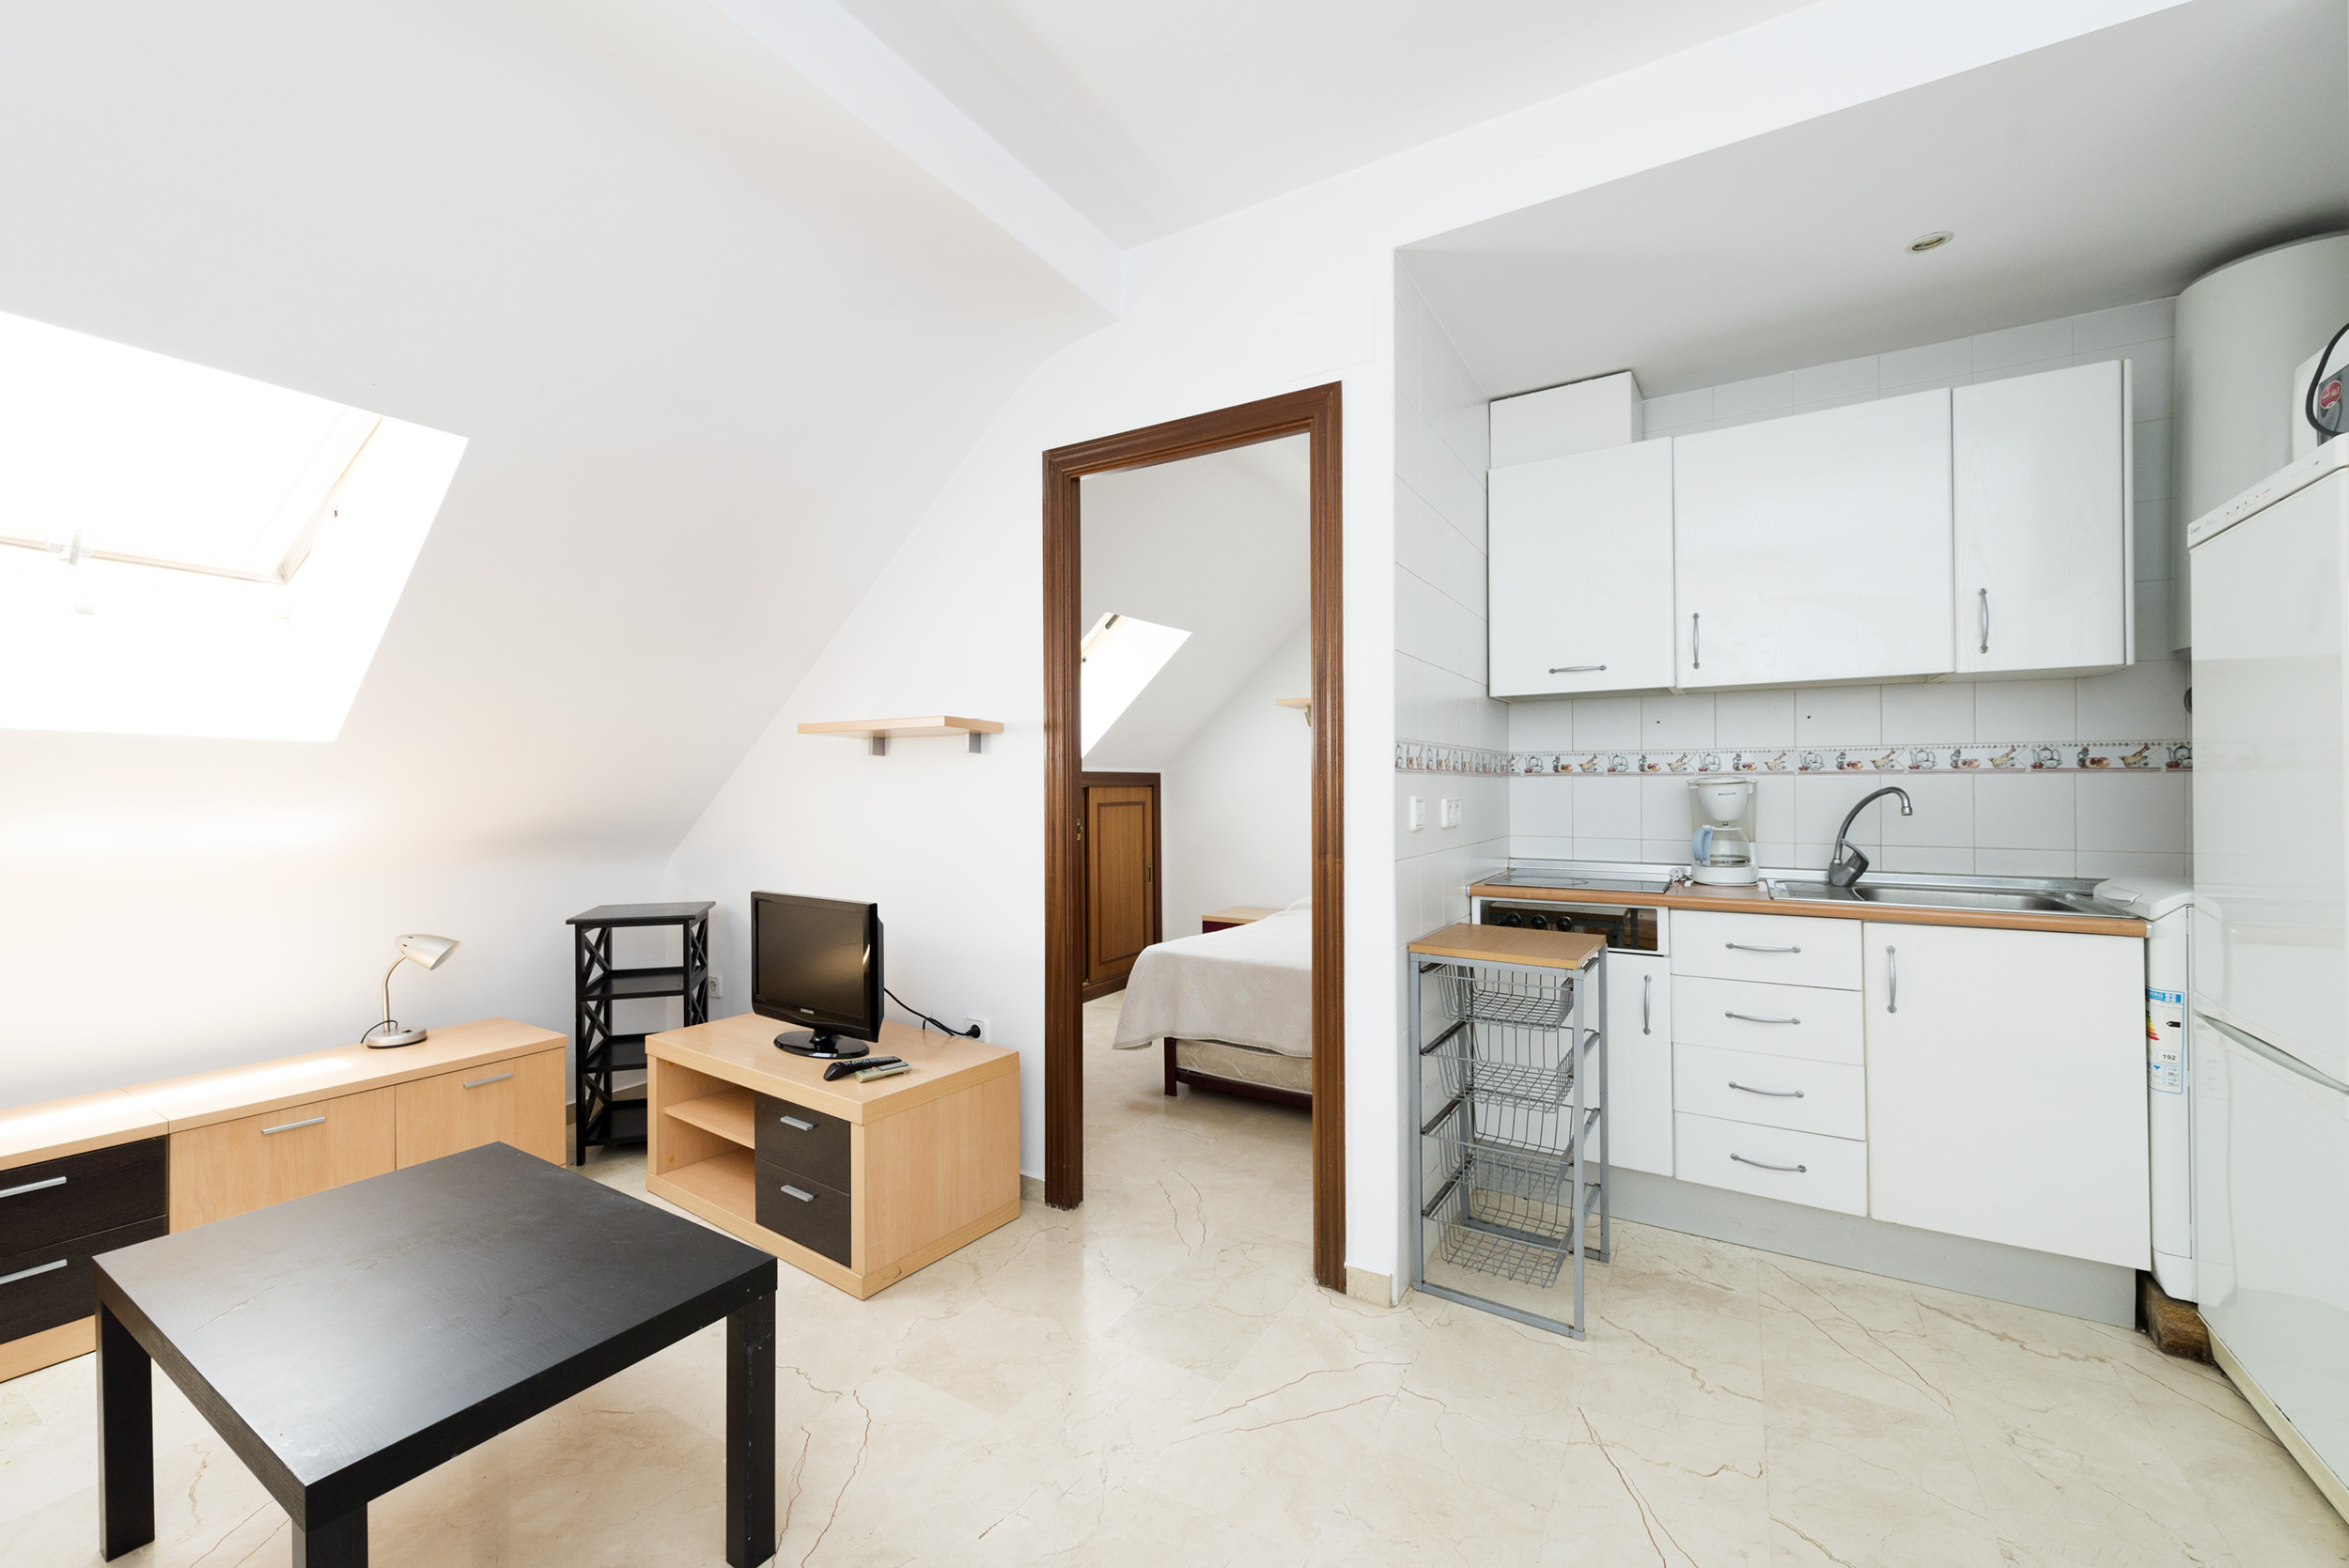 Penthouse in Fuengirola Centro